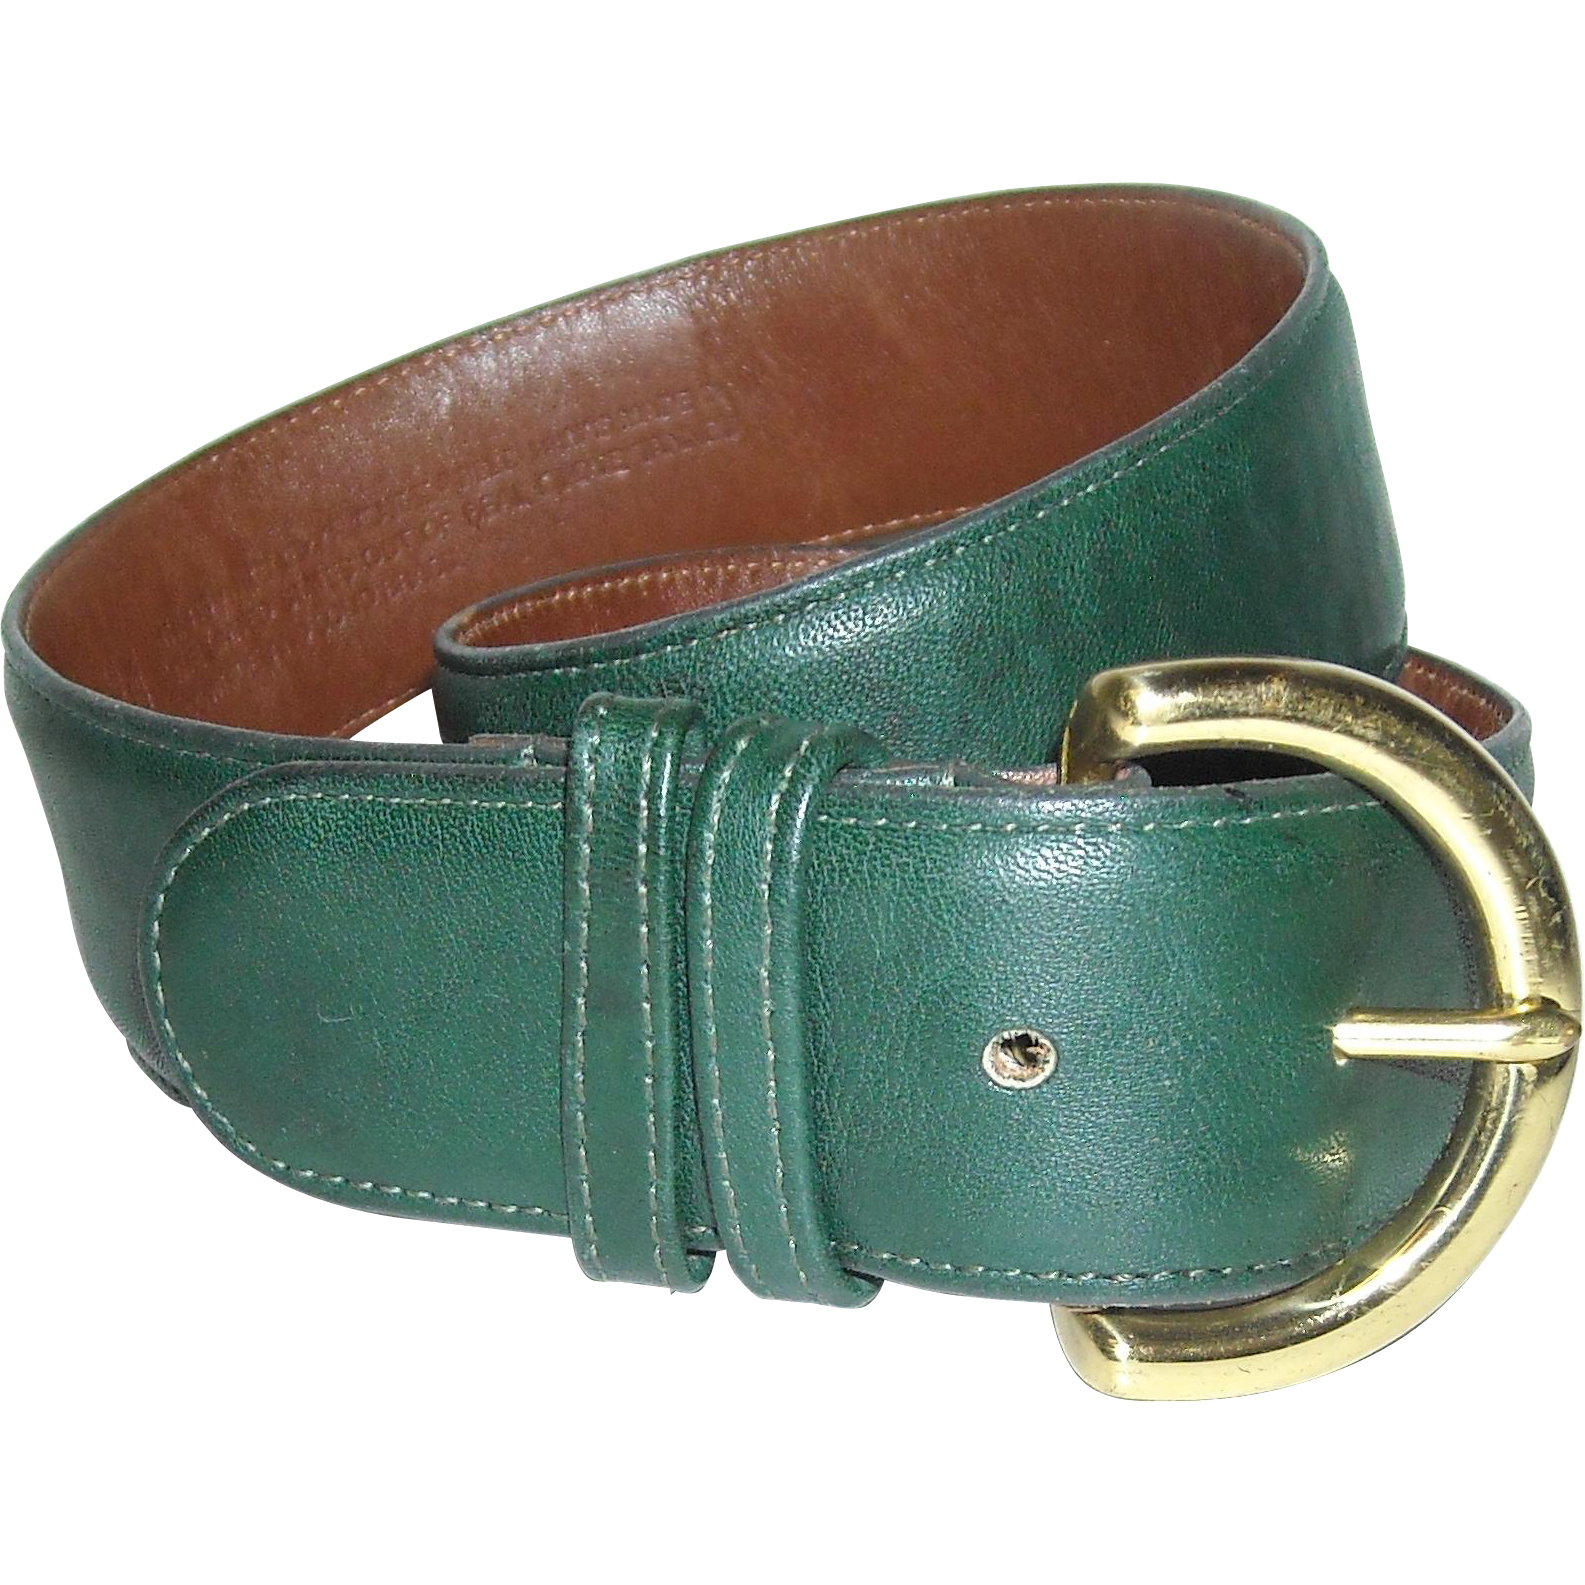 Coach Leather Belt 8500 Bottle Green